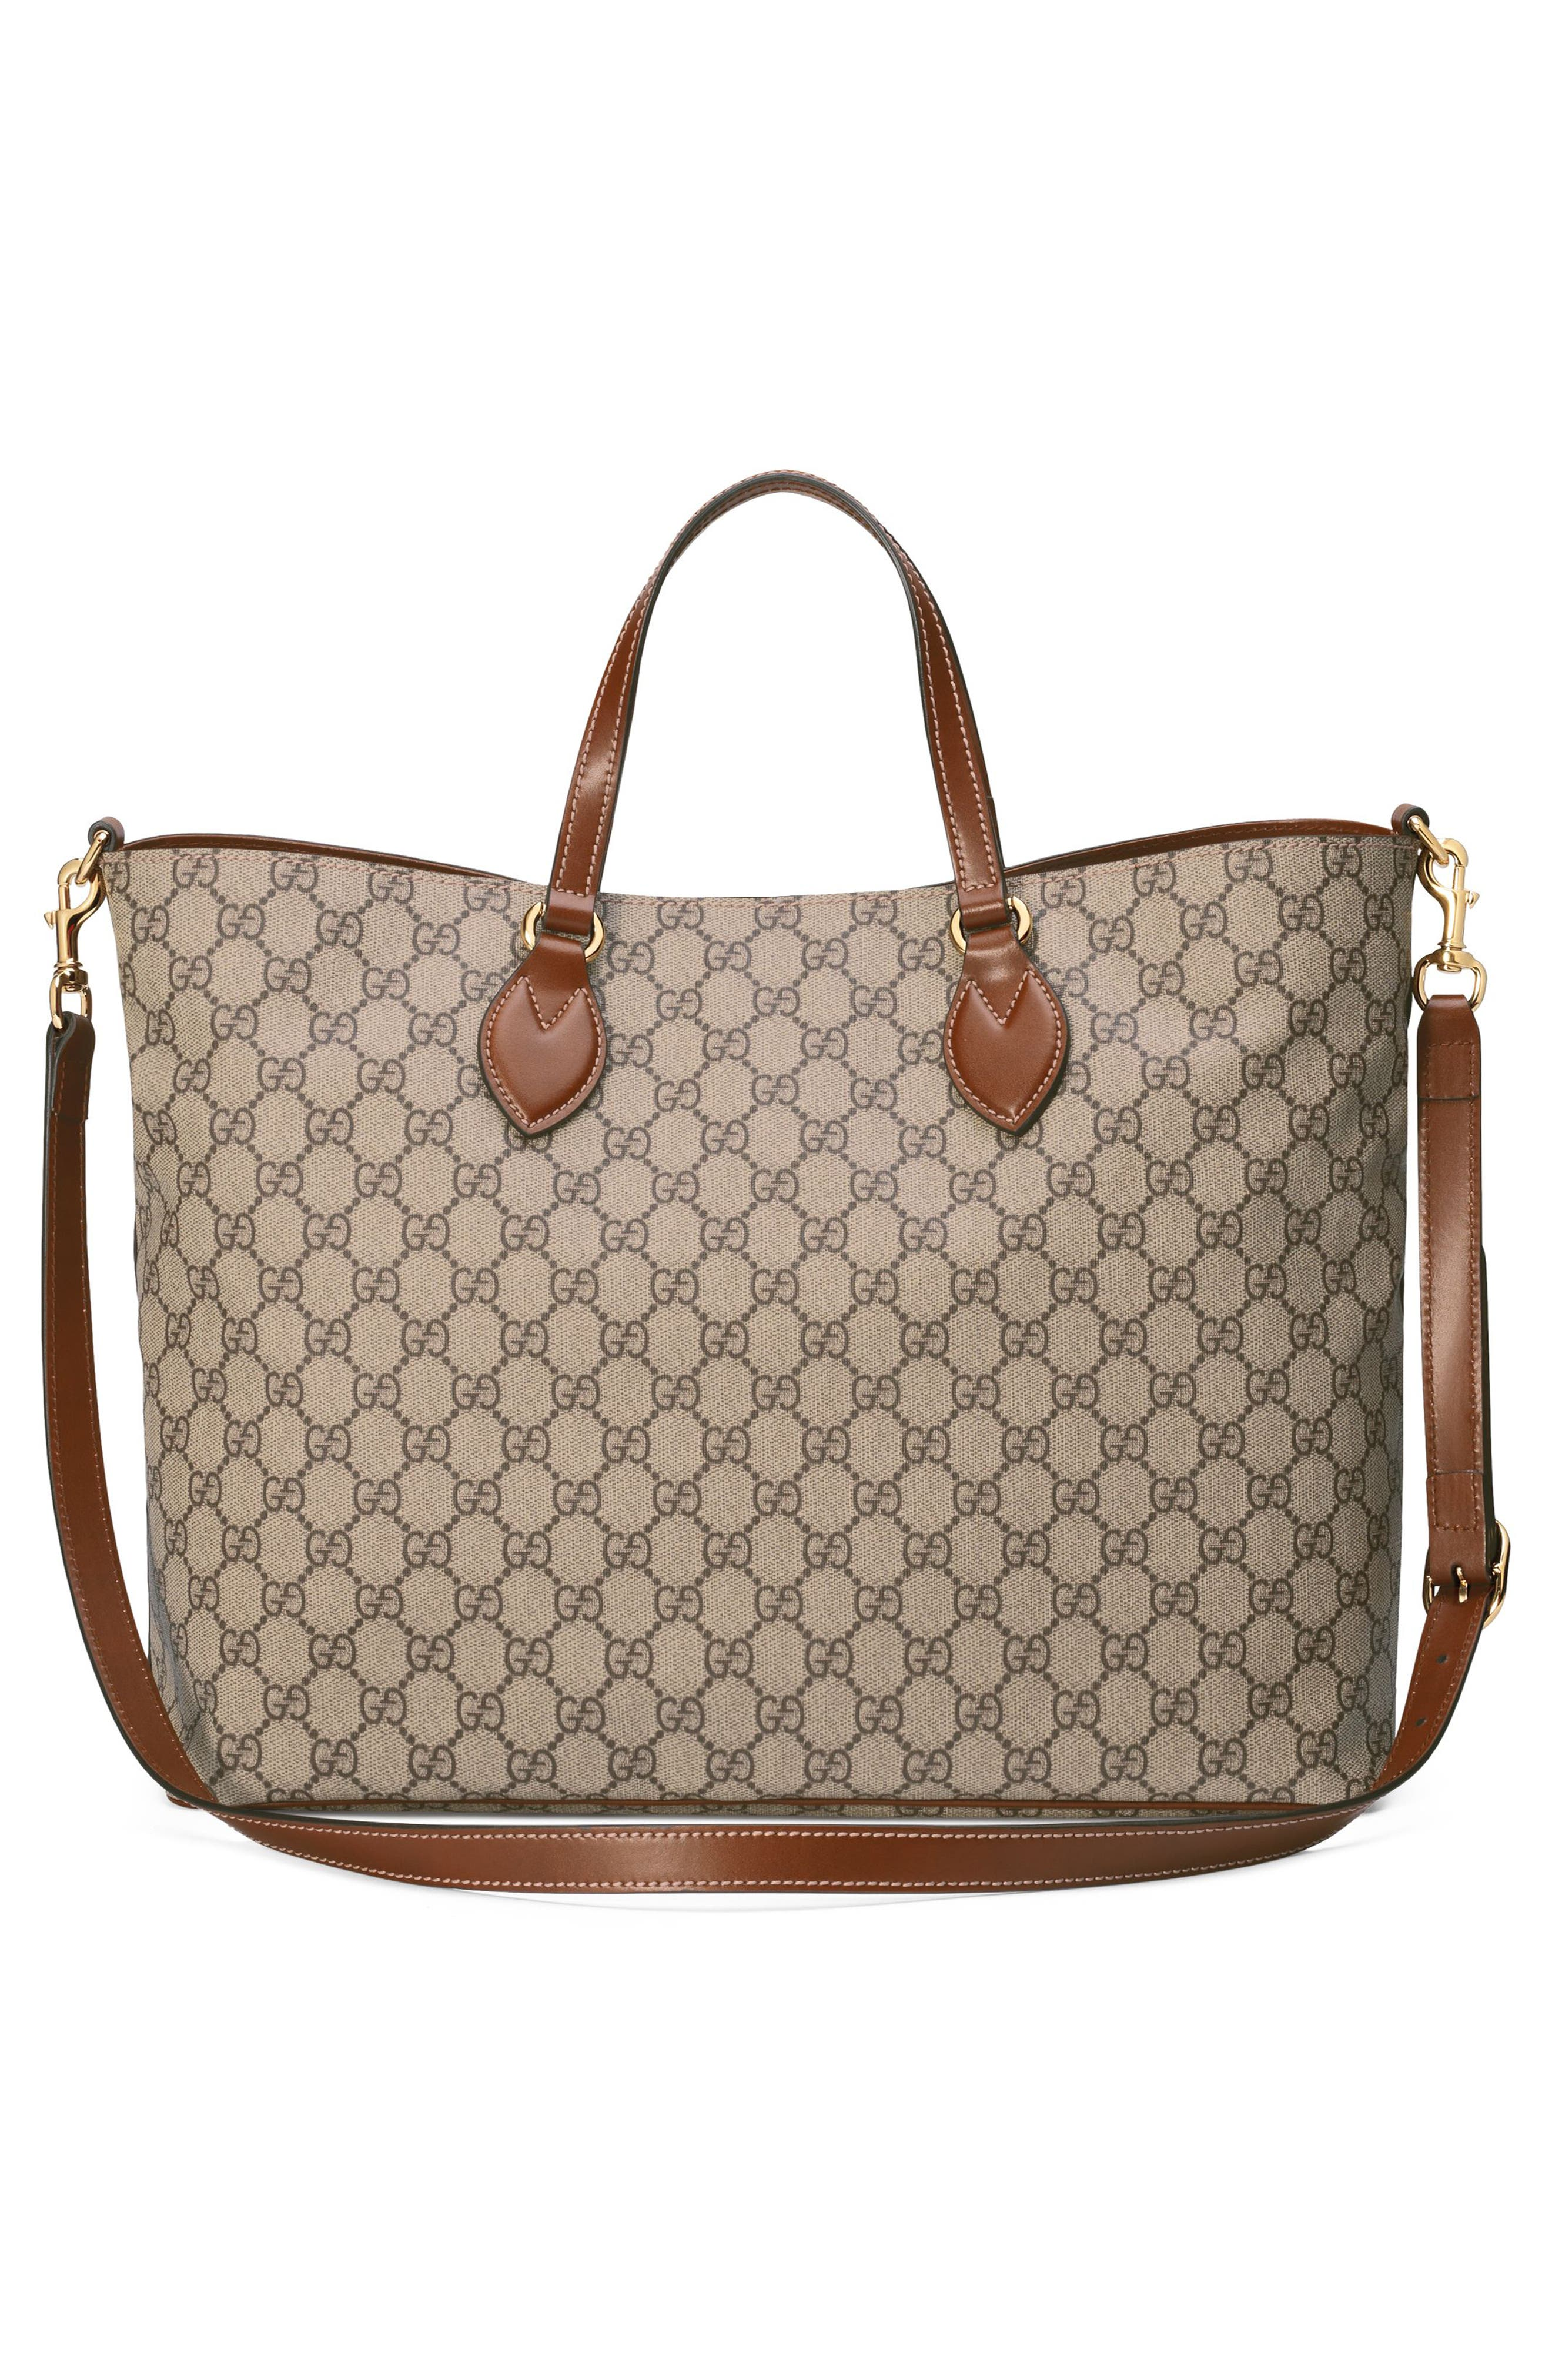 GG Supreme Soft Canvas Tote,                             Alternate thumbnail 2, color,                             283